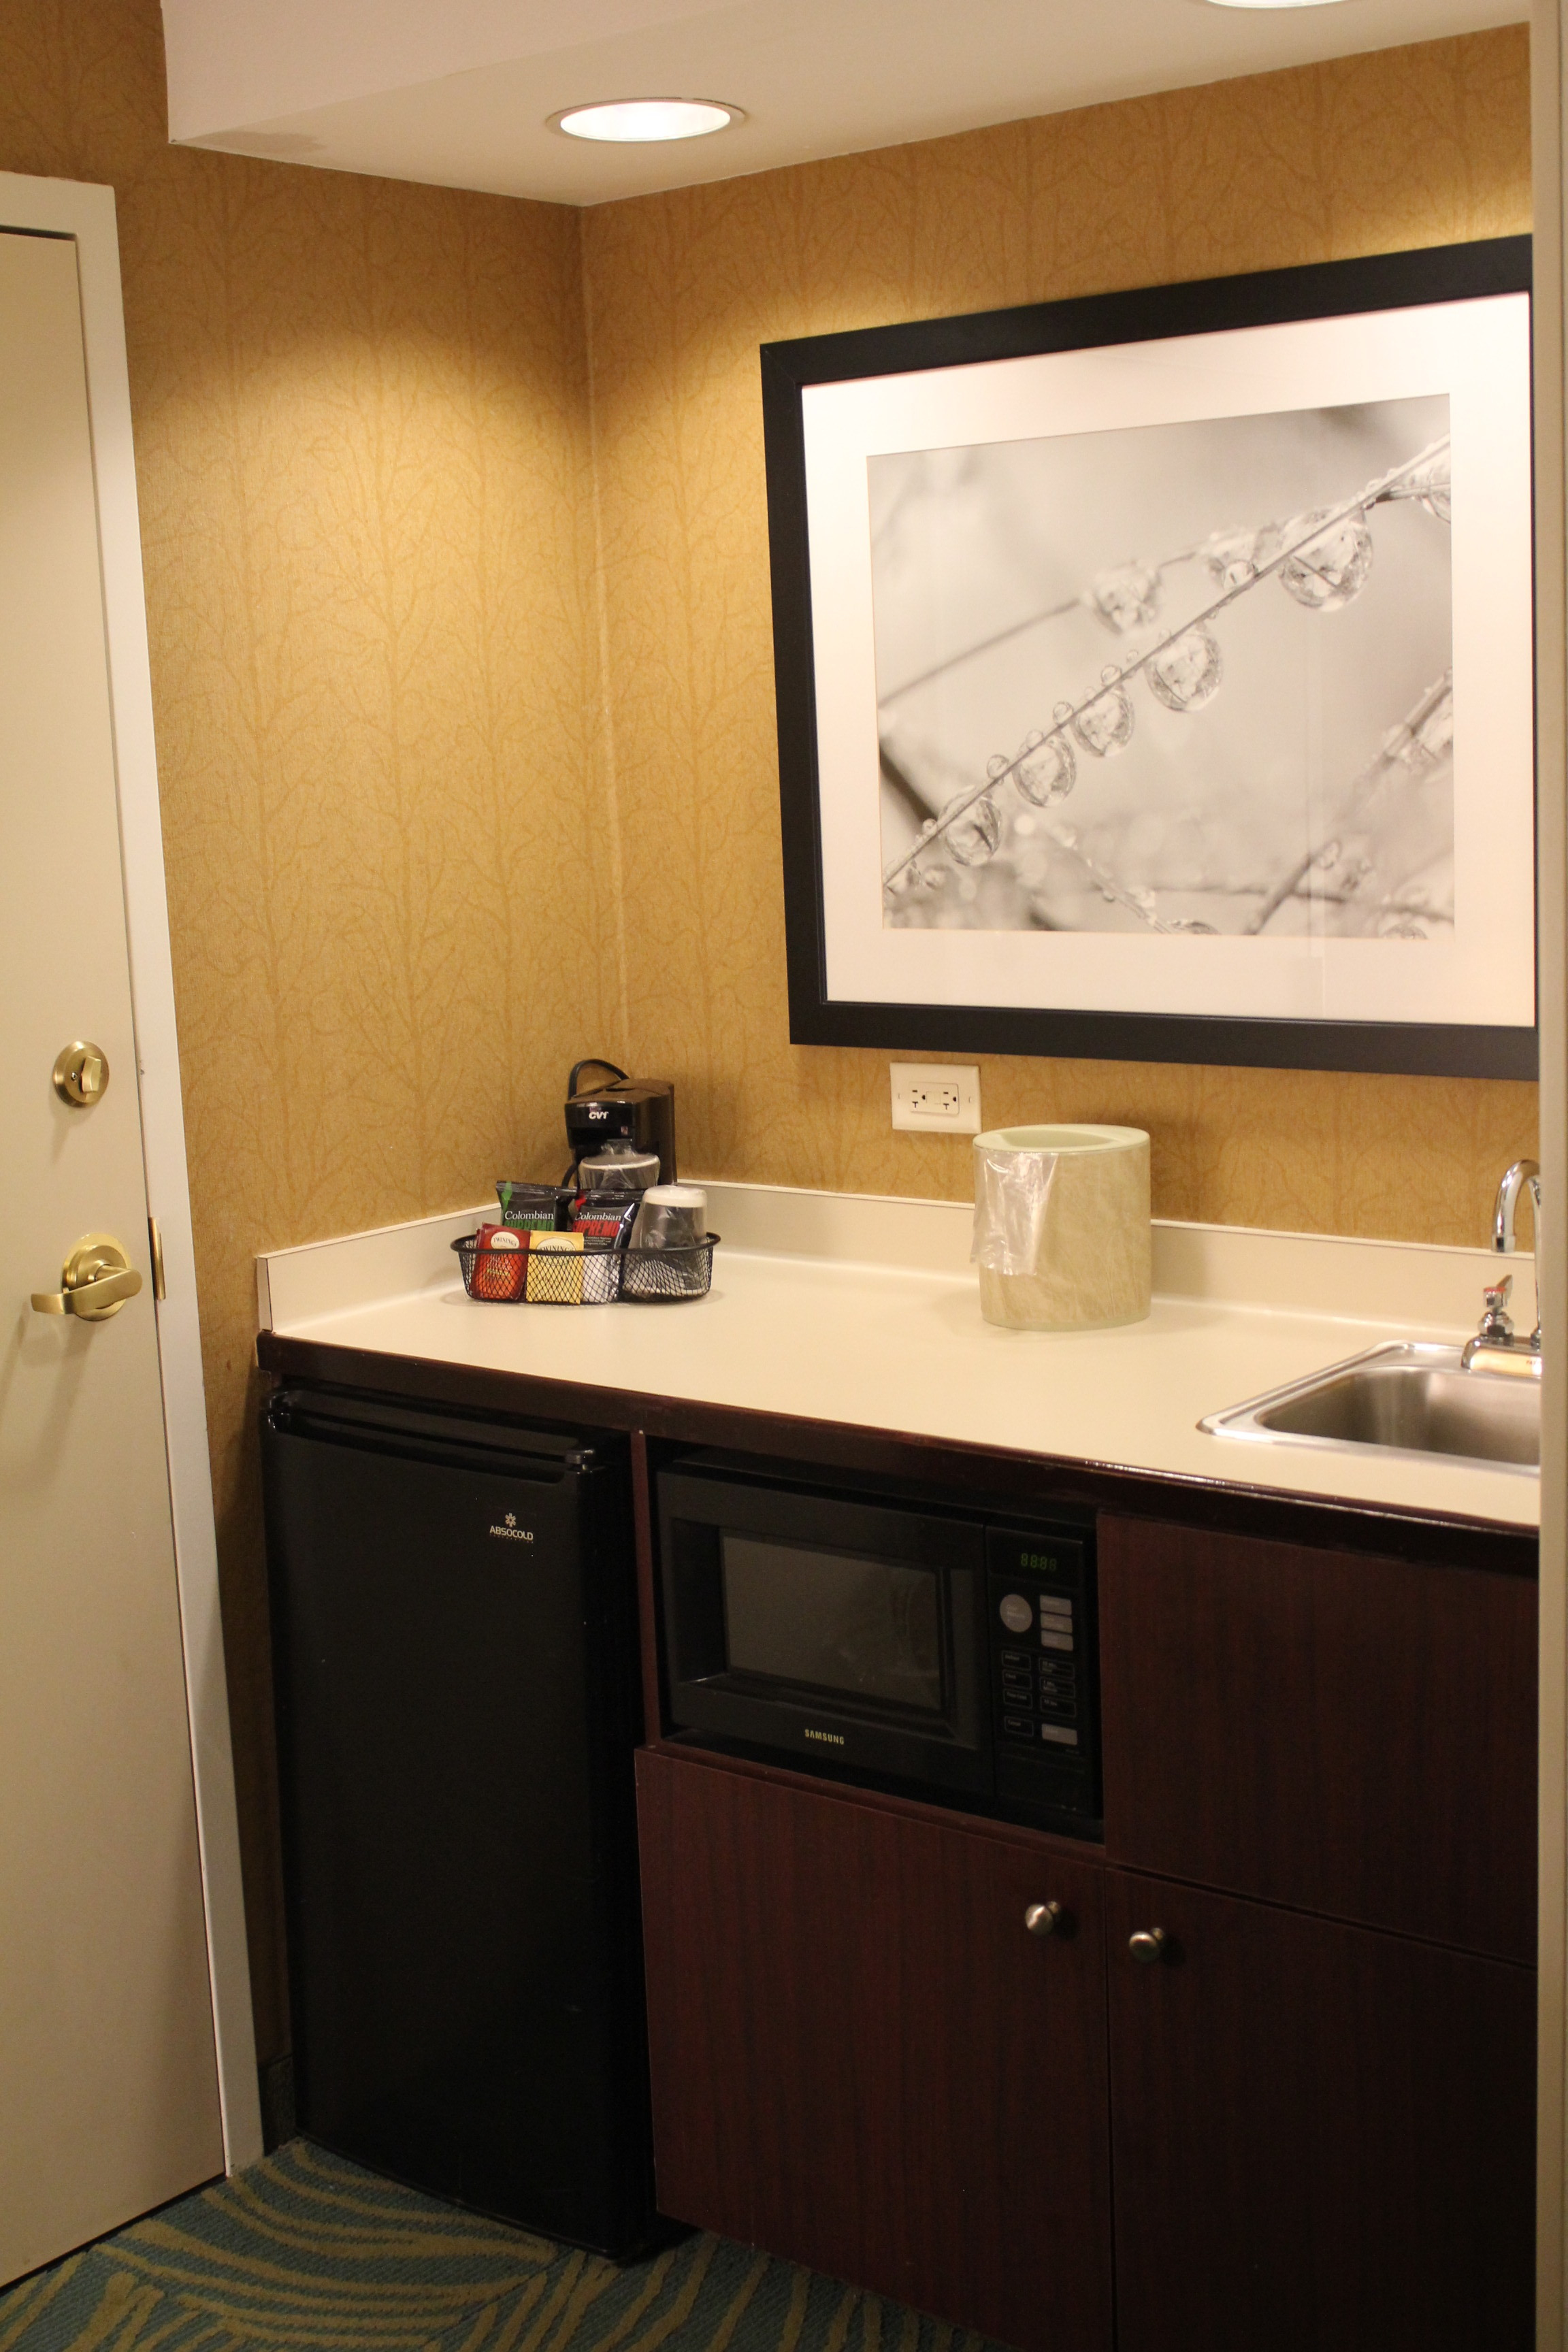 SpringHill Suites Charlotte Airport – Pantry